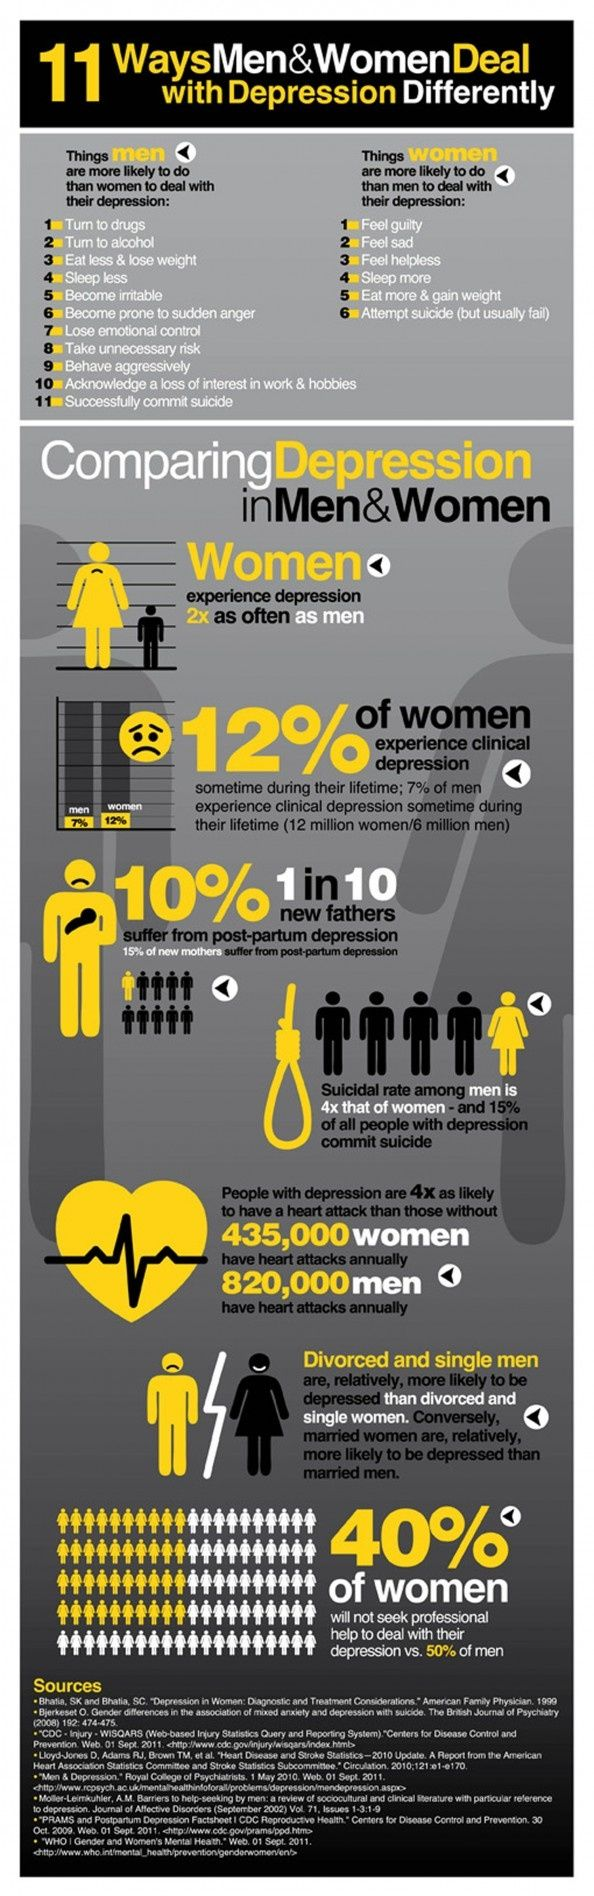 Dealing With Depression - Men & Women Deal with Depression Differently - InfoGraphics